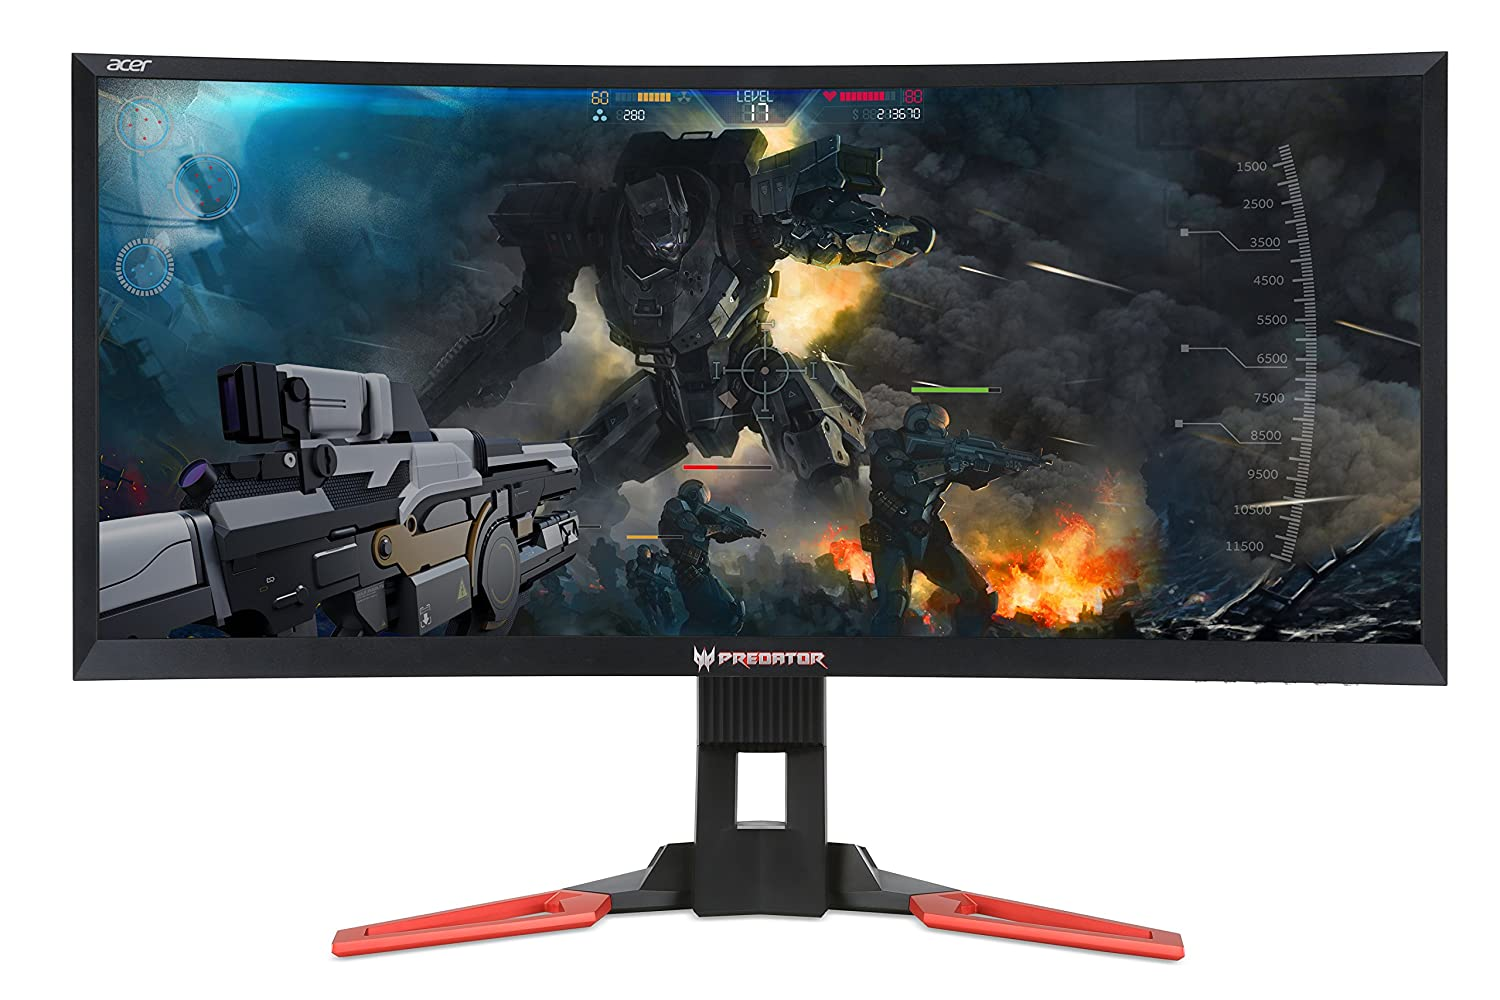 Acer Predator Z35 35-inch Curved Full HD Monitor Black Friday Deals 2019